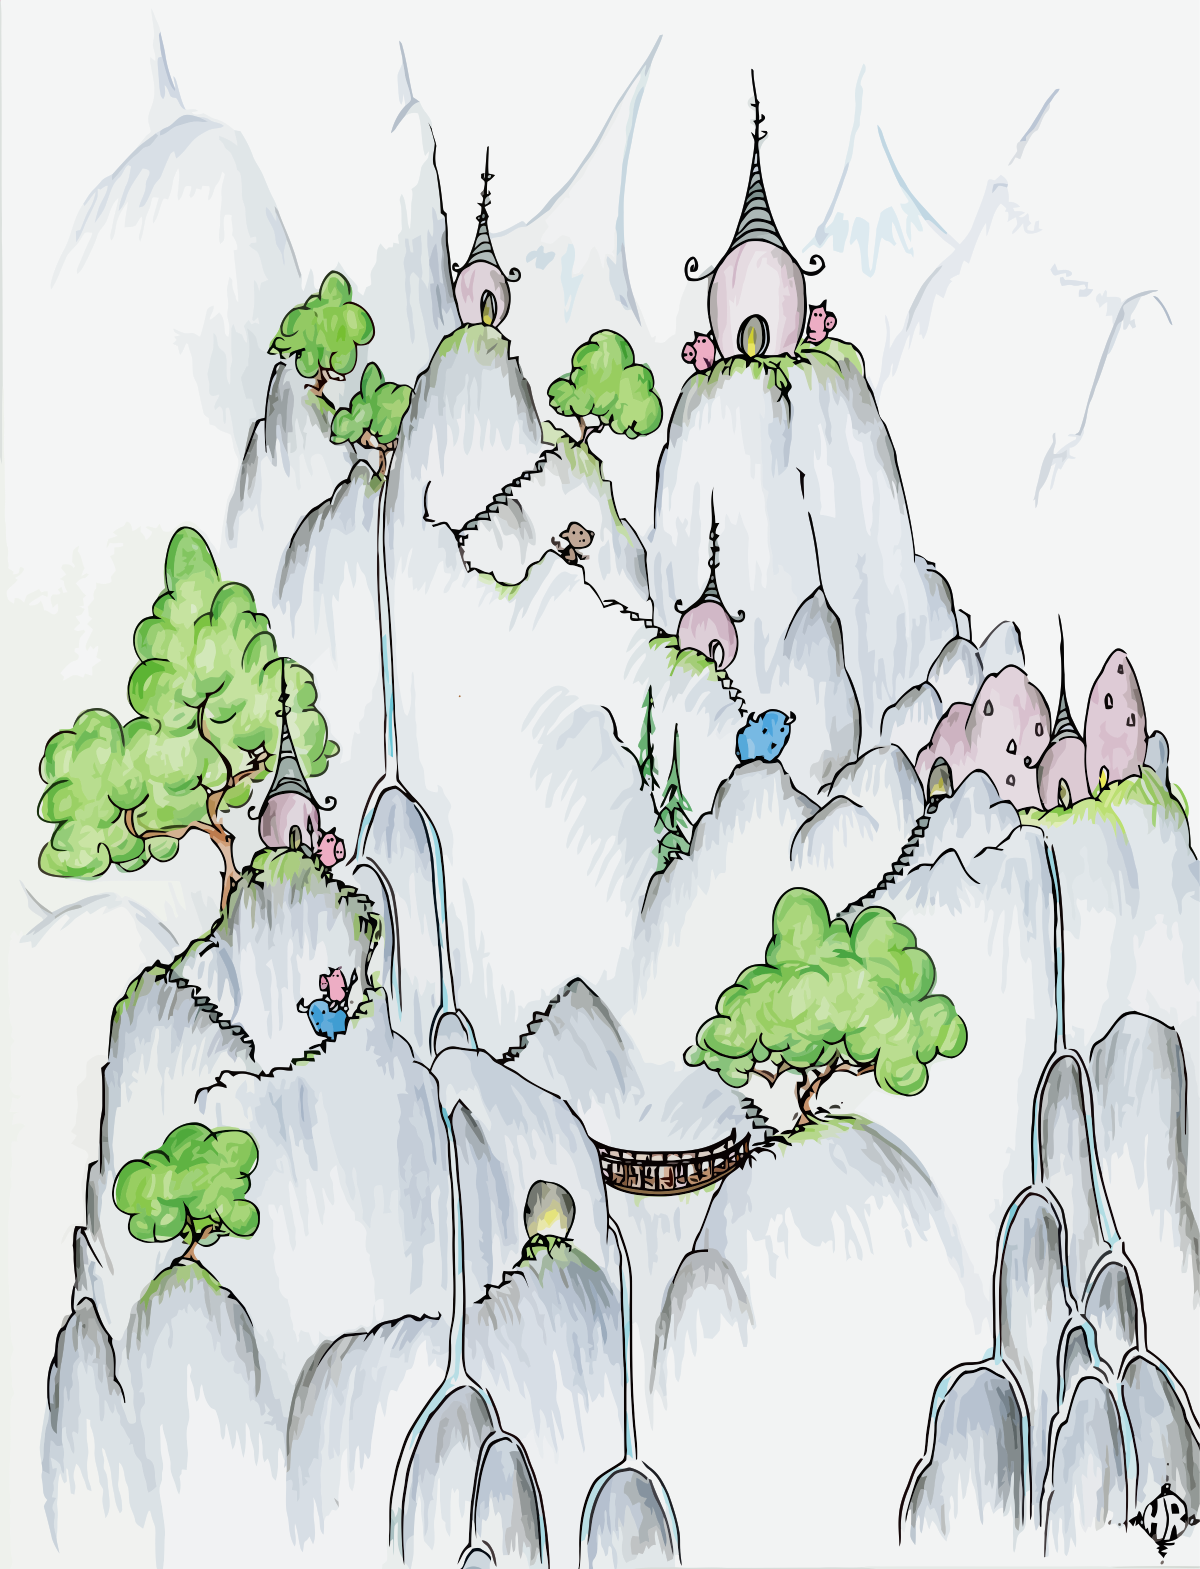 pigs on cliffs with waterfalls ands blue bison and a monkey